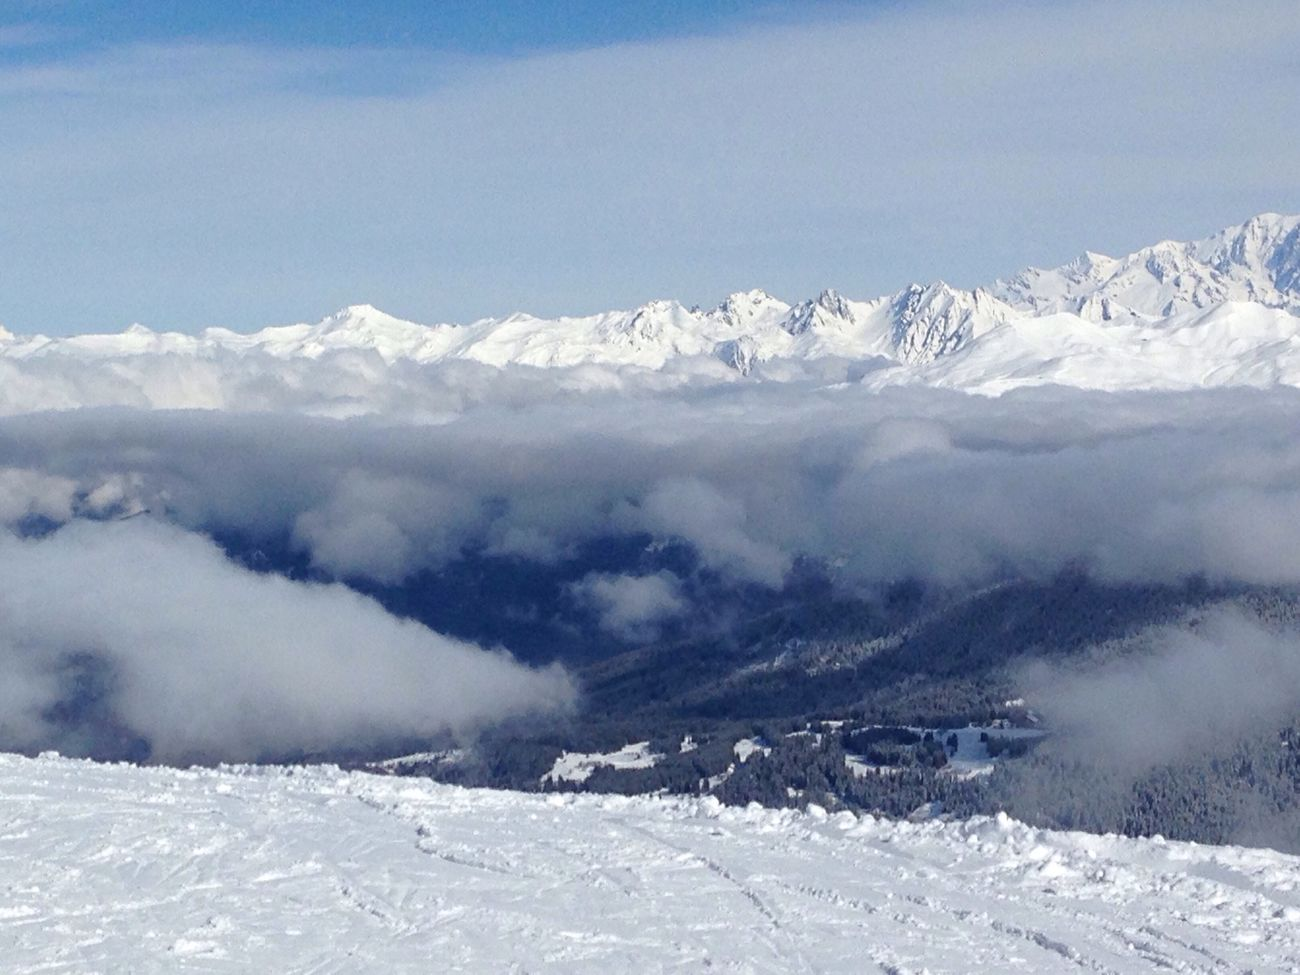 Above the cloud Clouds And Sky Clouds Mountains Snow Ski Snowboarding Blue Sky France Meribel 3vallées 3 Valleys